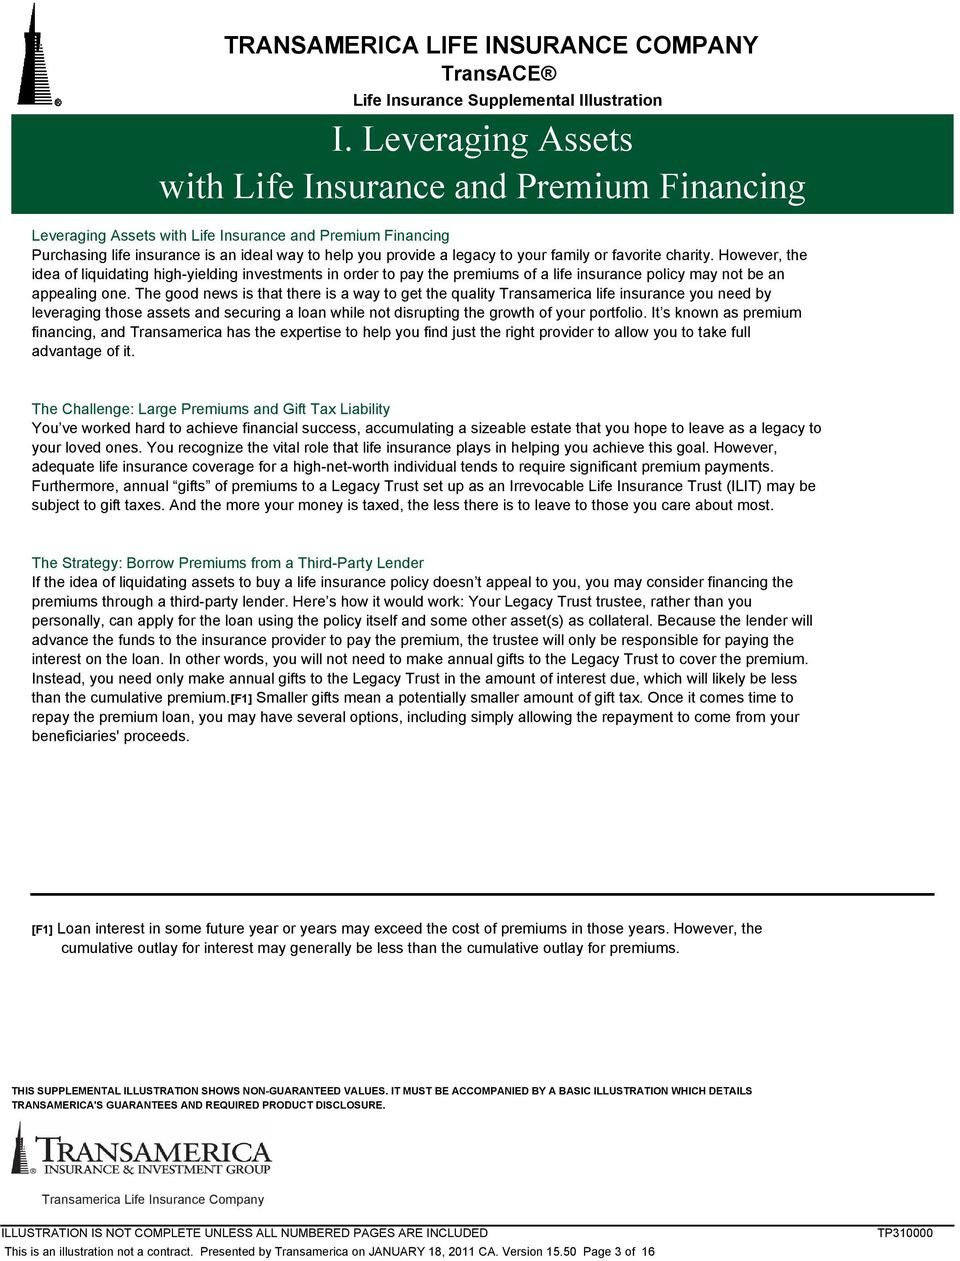 Transamerica Life Insurance Reviews >> Transamerica Life Insurance Company Transace Life Insurance